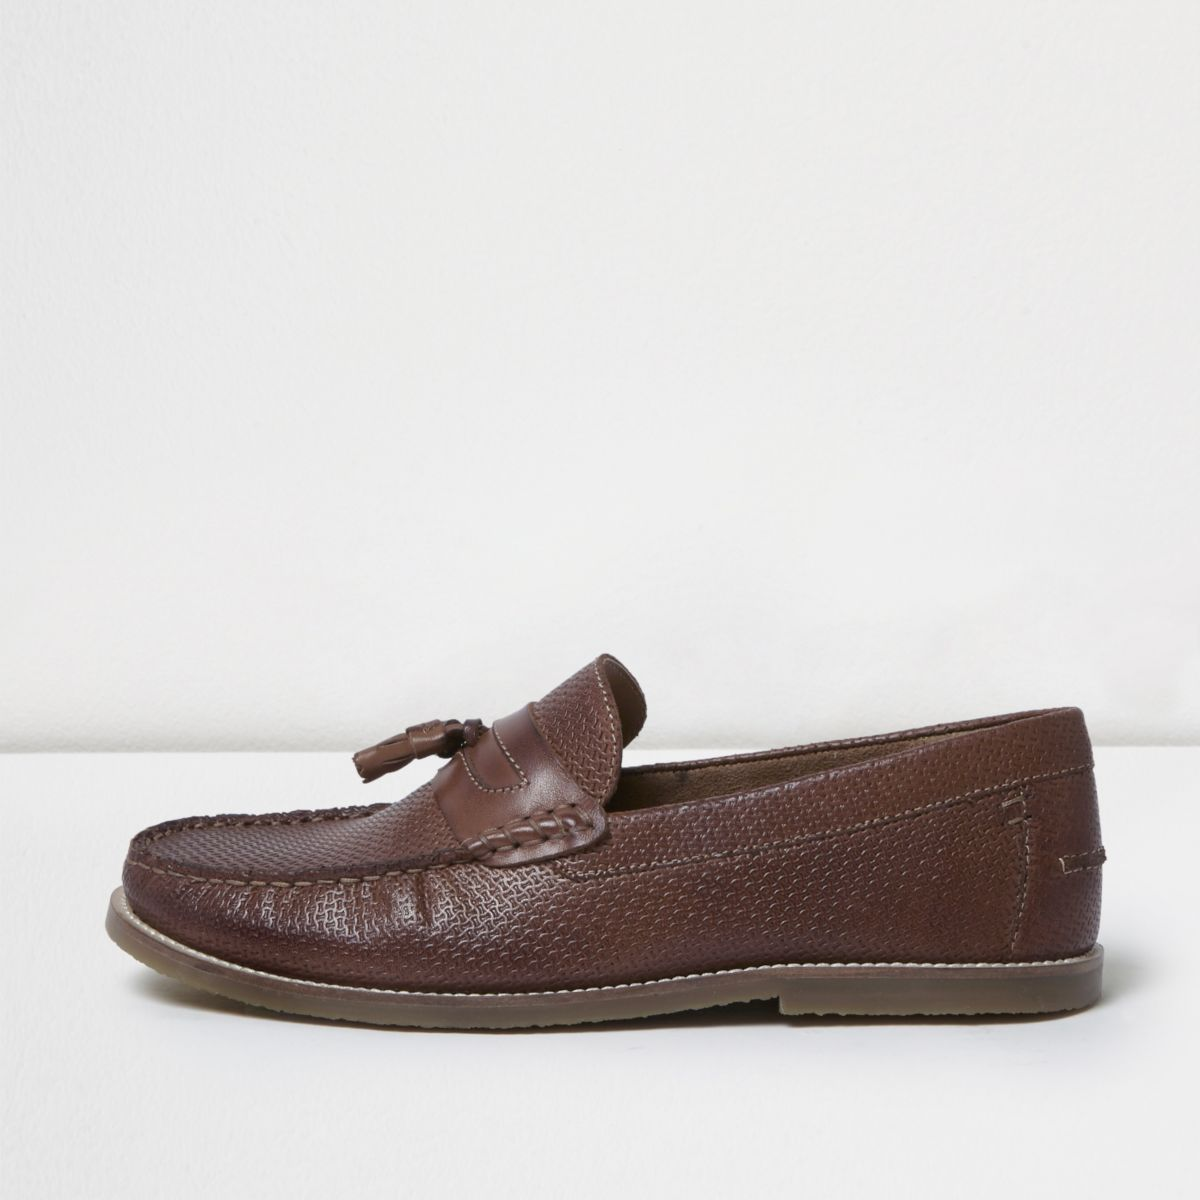 Brown embossed leather loafers